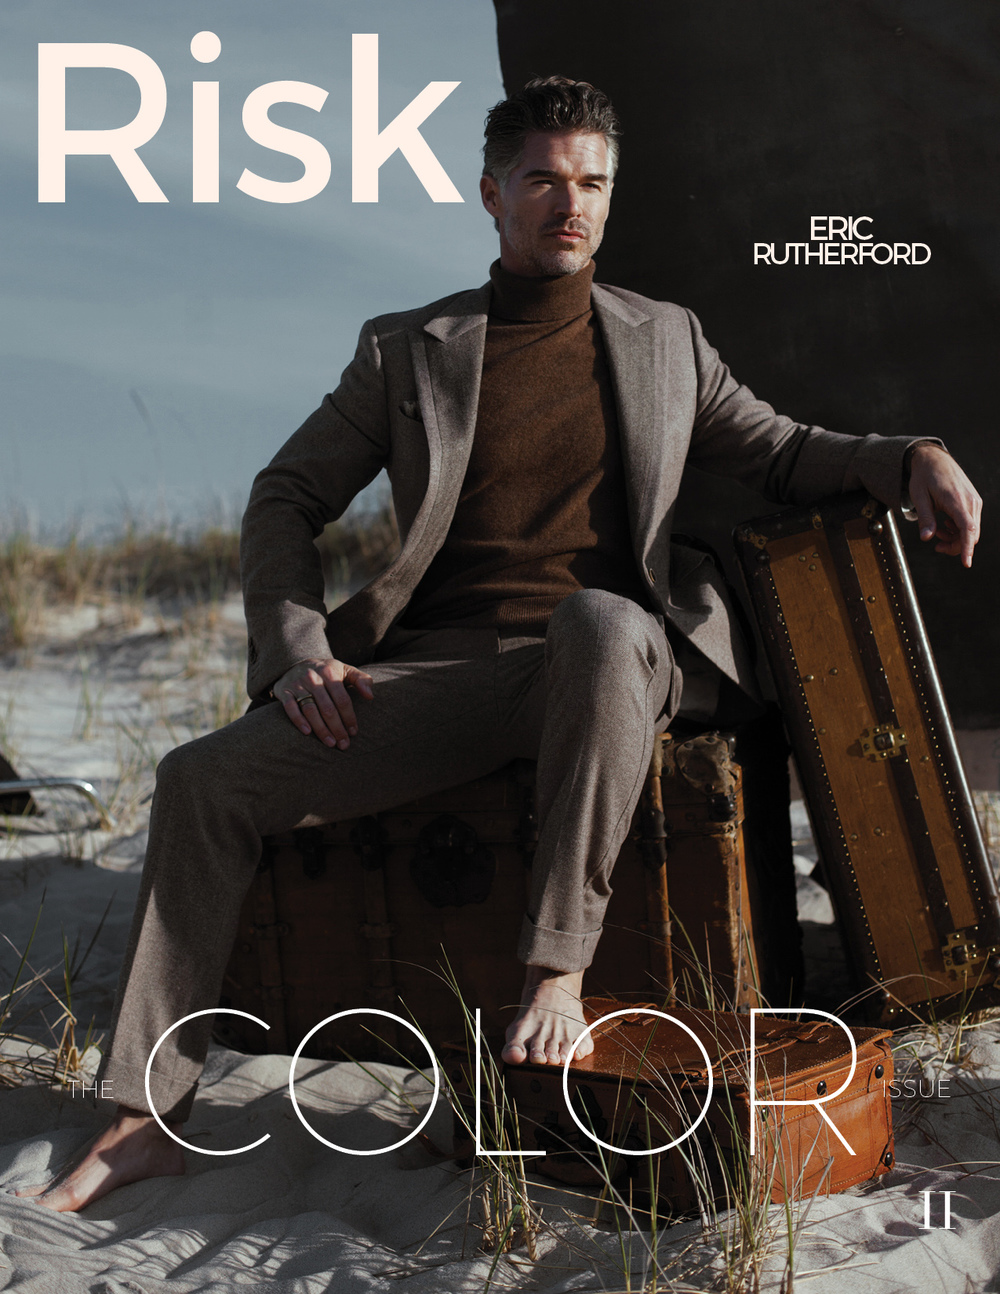 RISK II: THE COLOR ISSUE (Cover 2) BUY PRINT $30.00 BUY DIGITAL $5.00